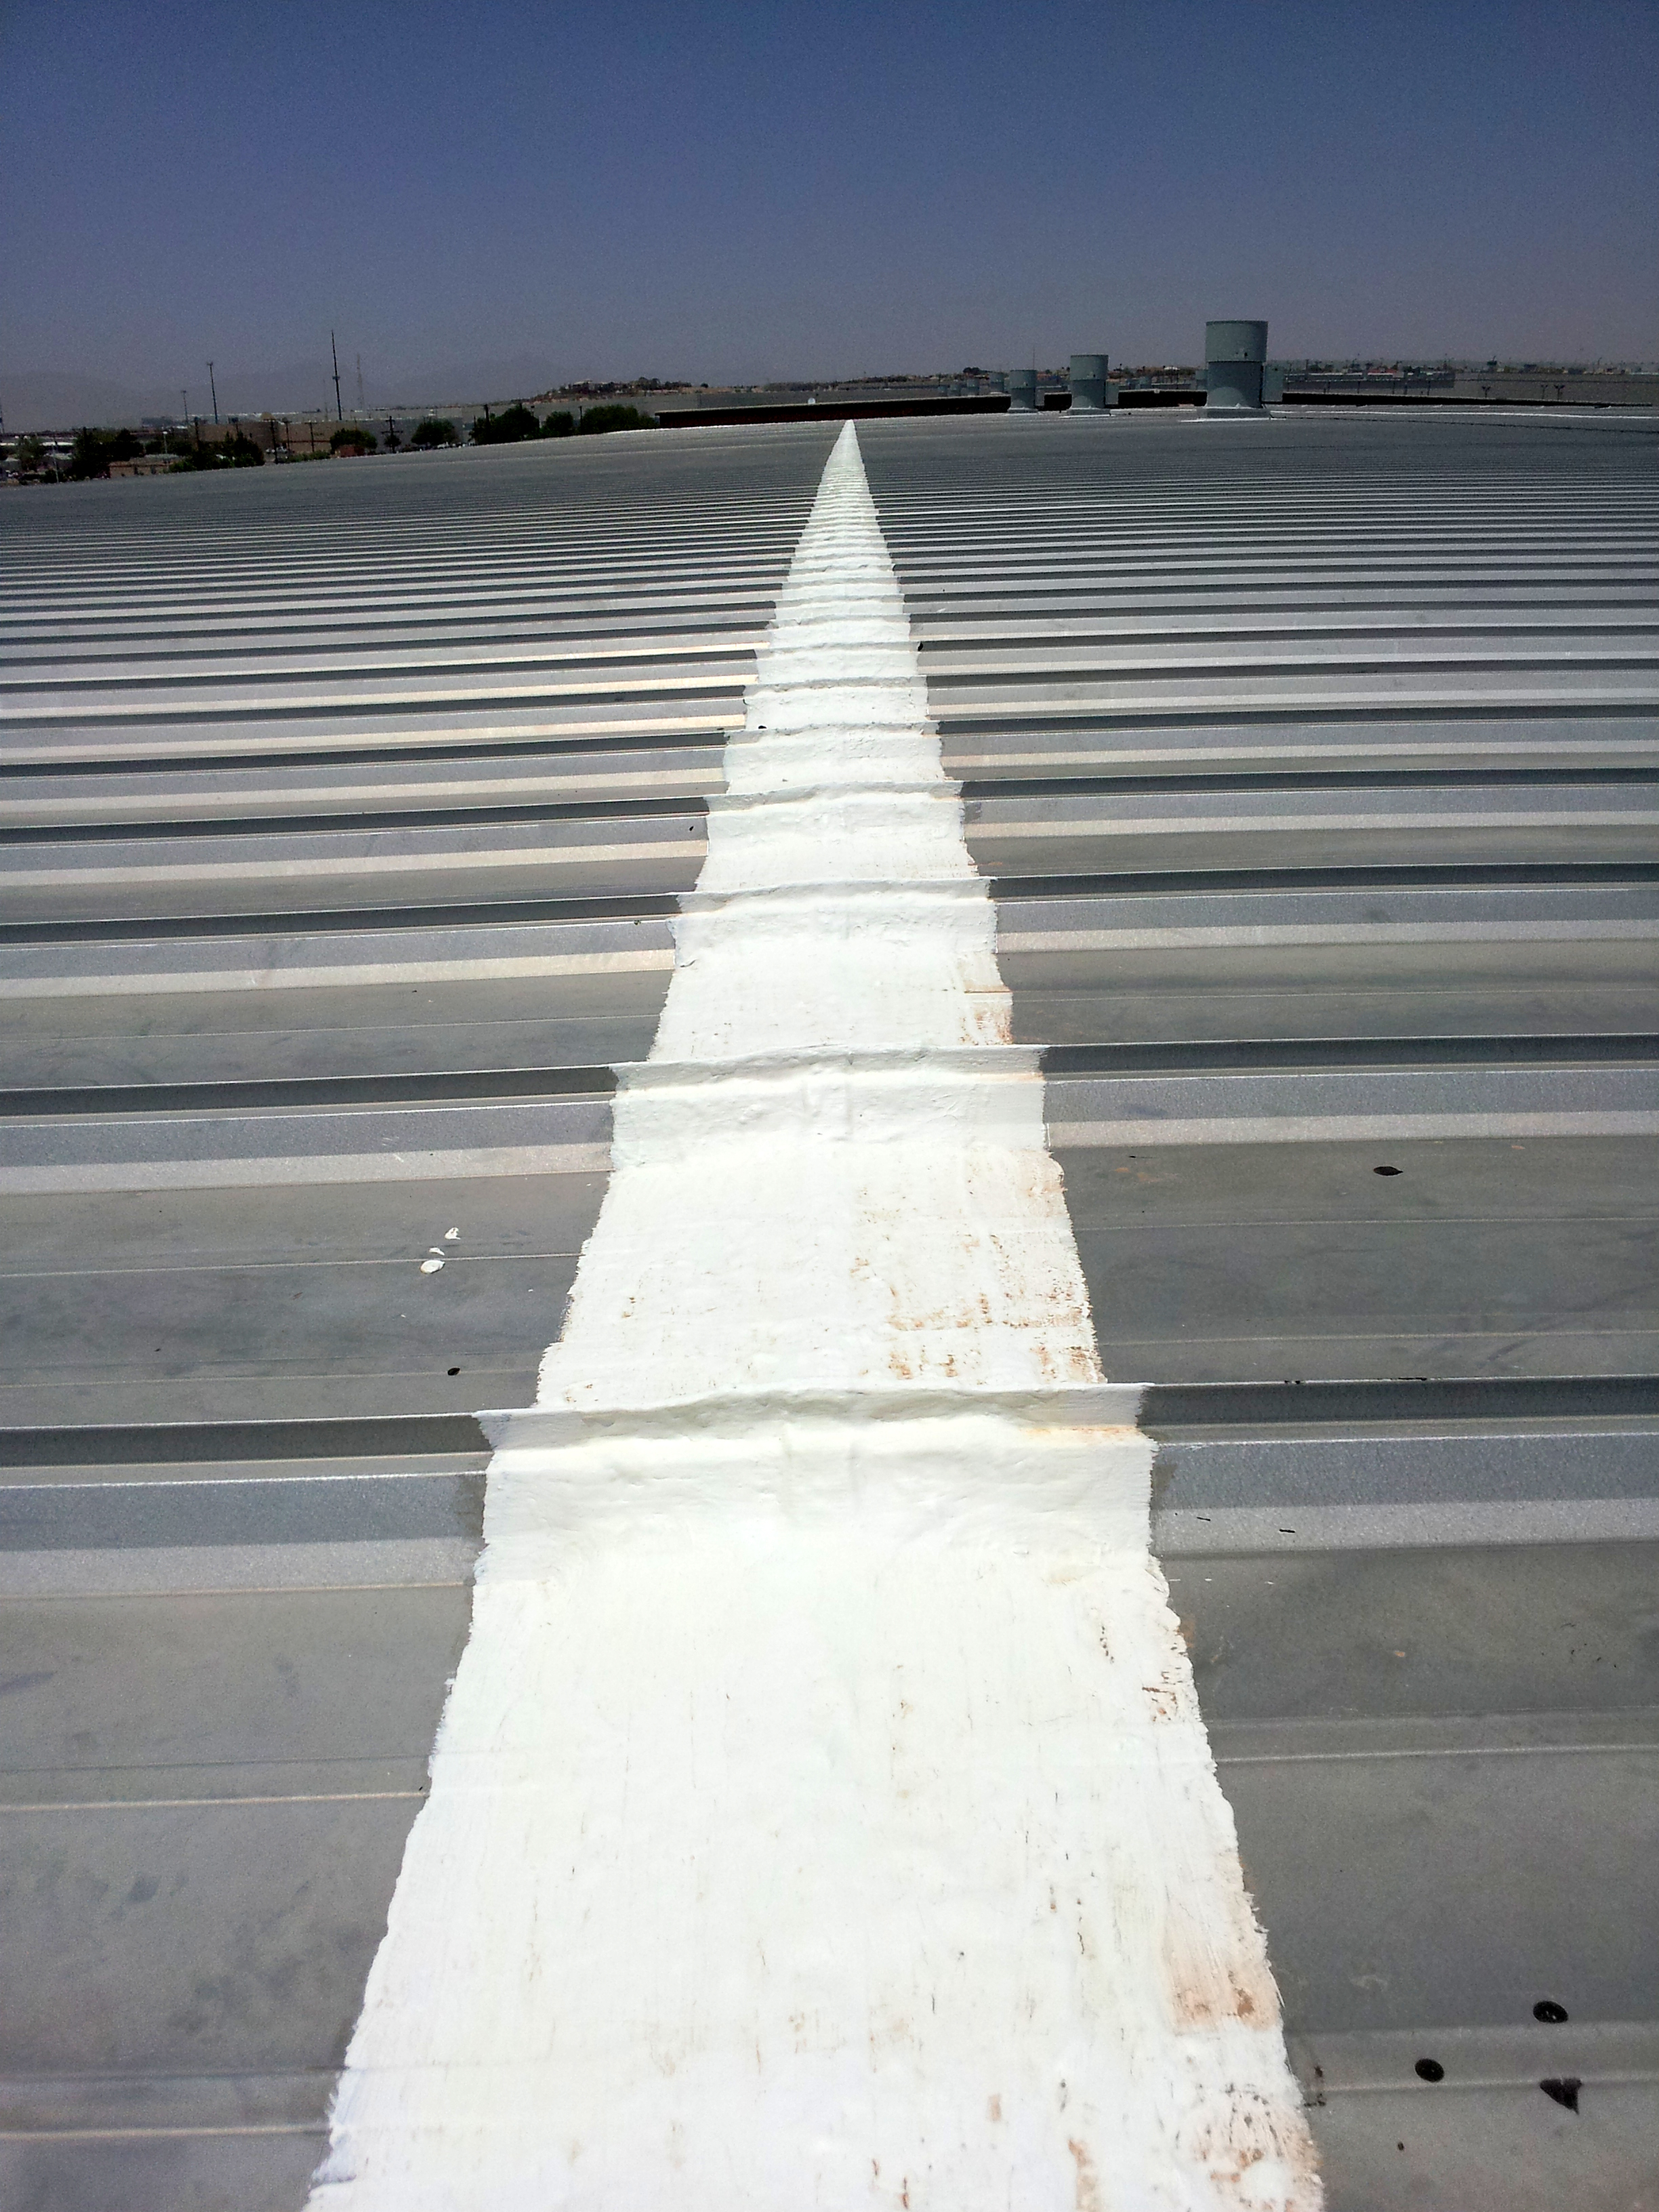 A white, elastomeric, fabric-reinforced roof coating has been applied to the panel laps on this structural metal panel roof. The original sealant within the laps had deteriorated. this isn't the way the manufacturer recommends the problem be addressed, but it's far cheaper and effective enough.